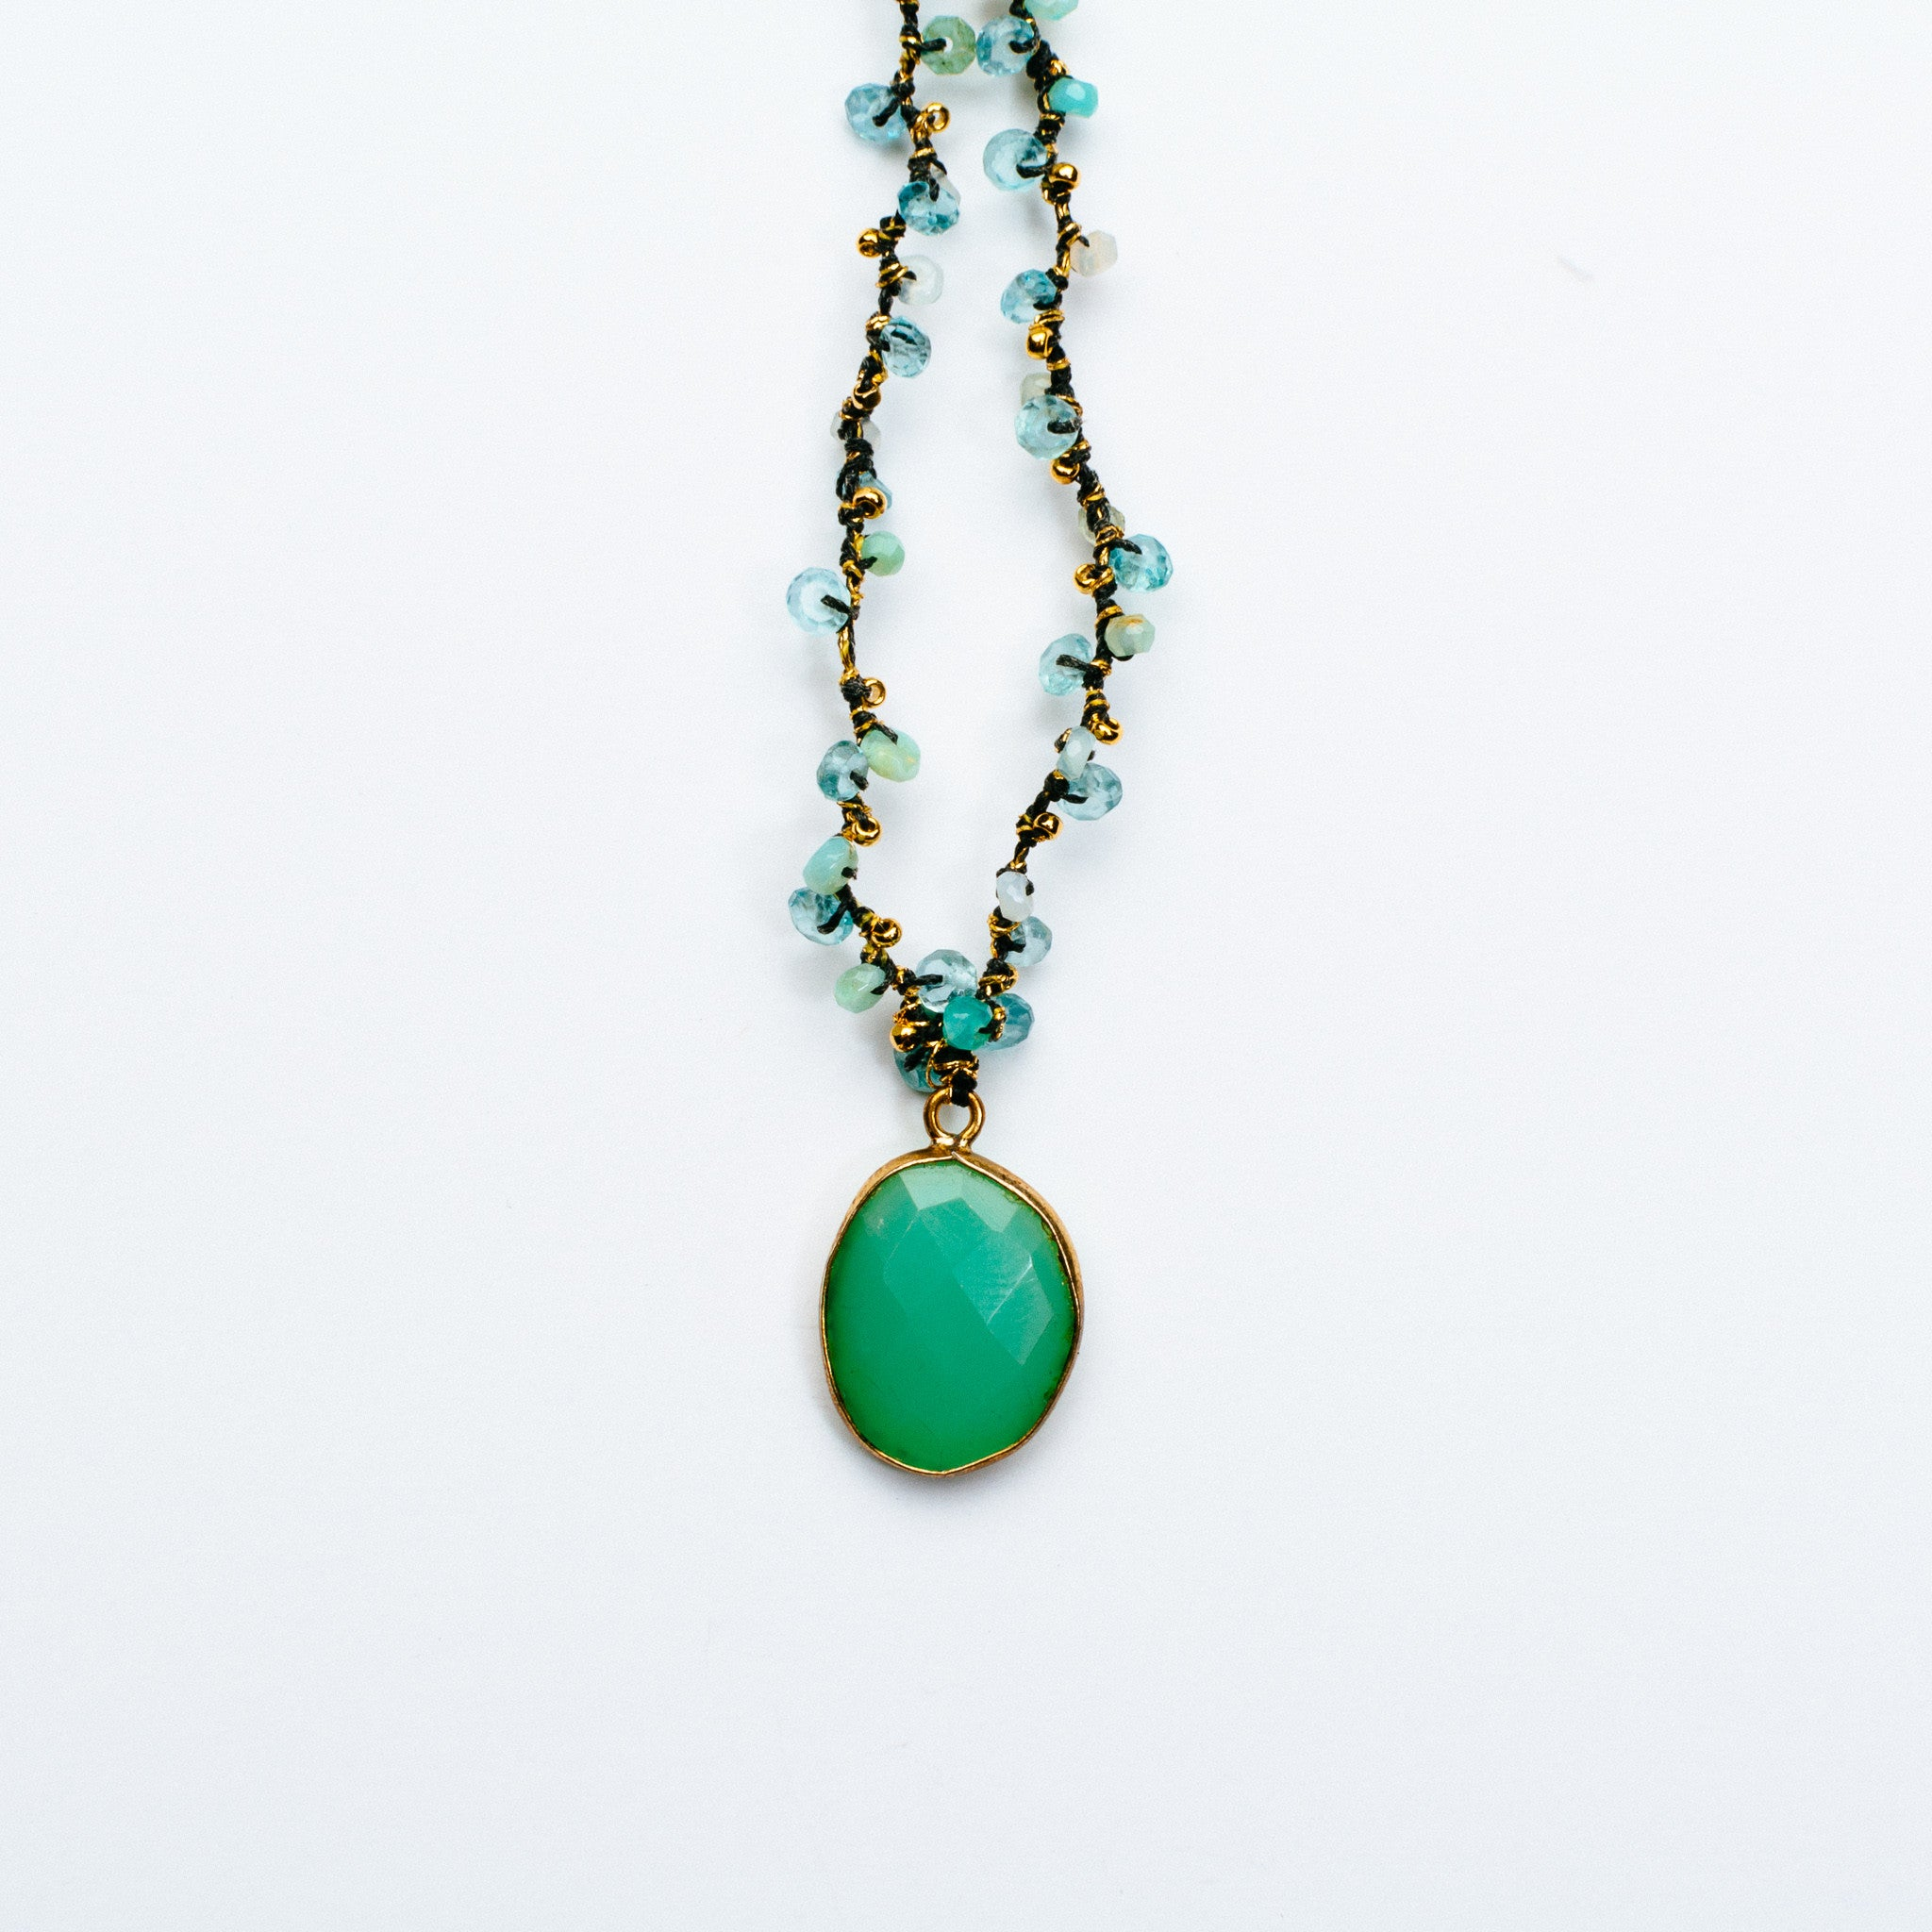 necklace chrysoprase fairley img samara products